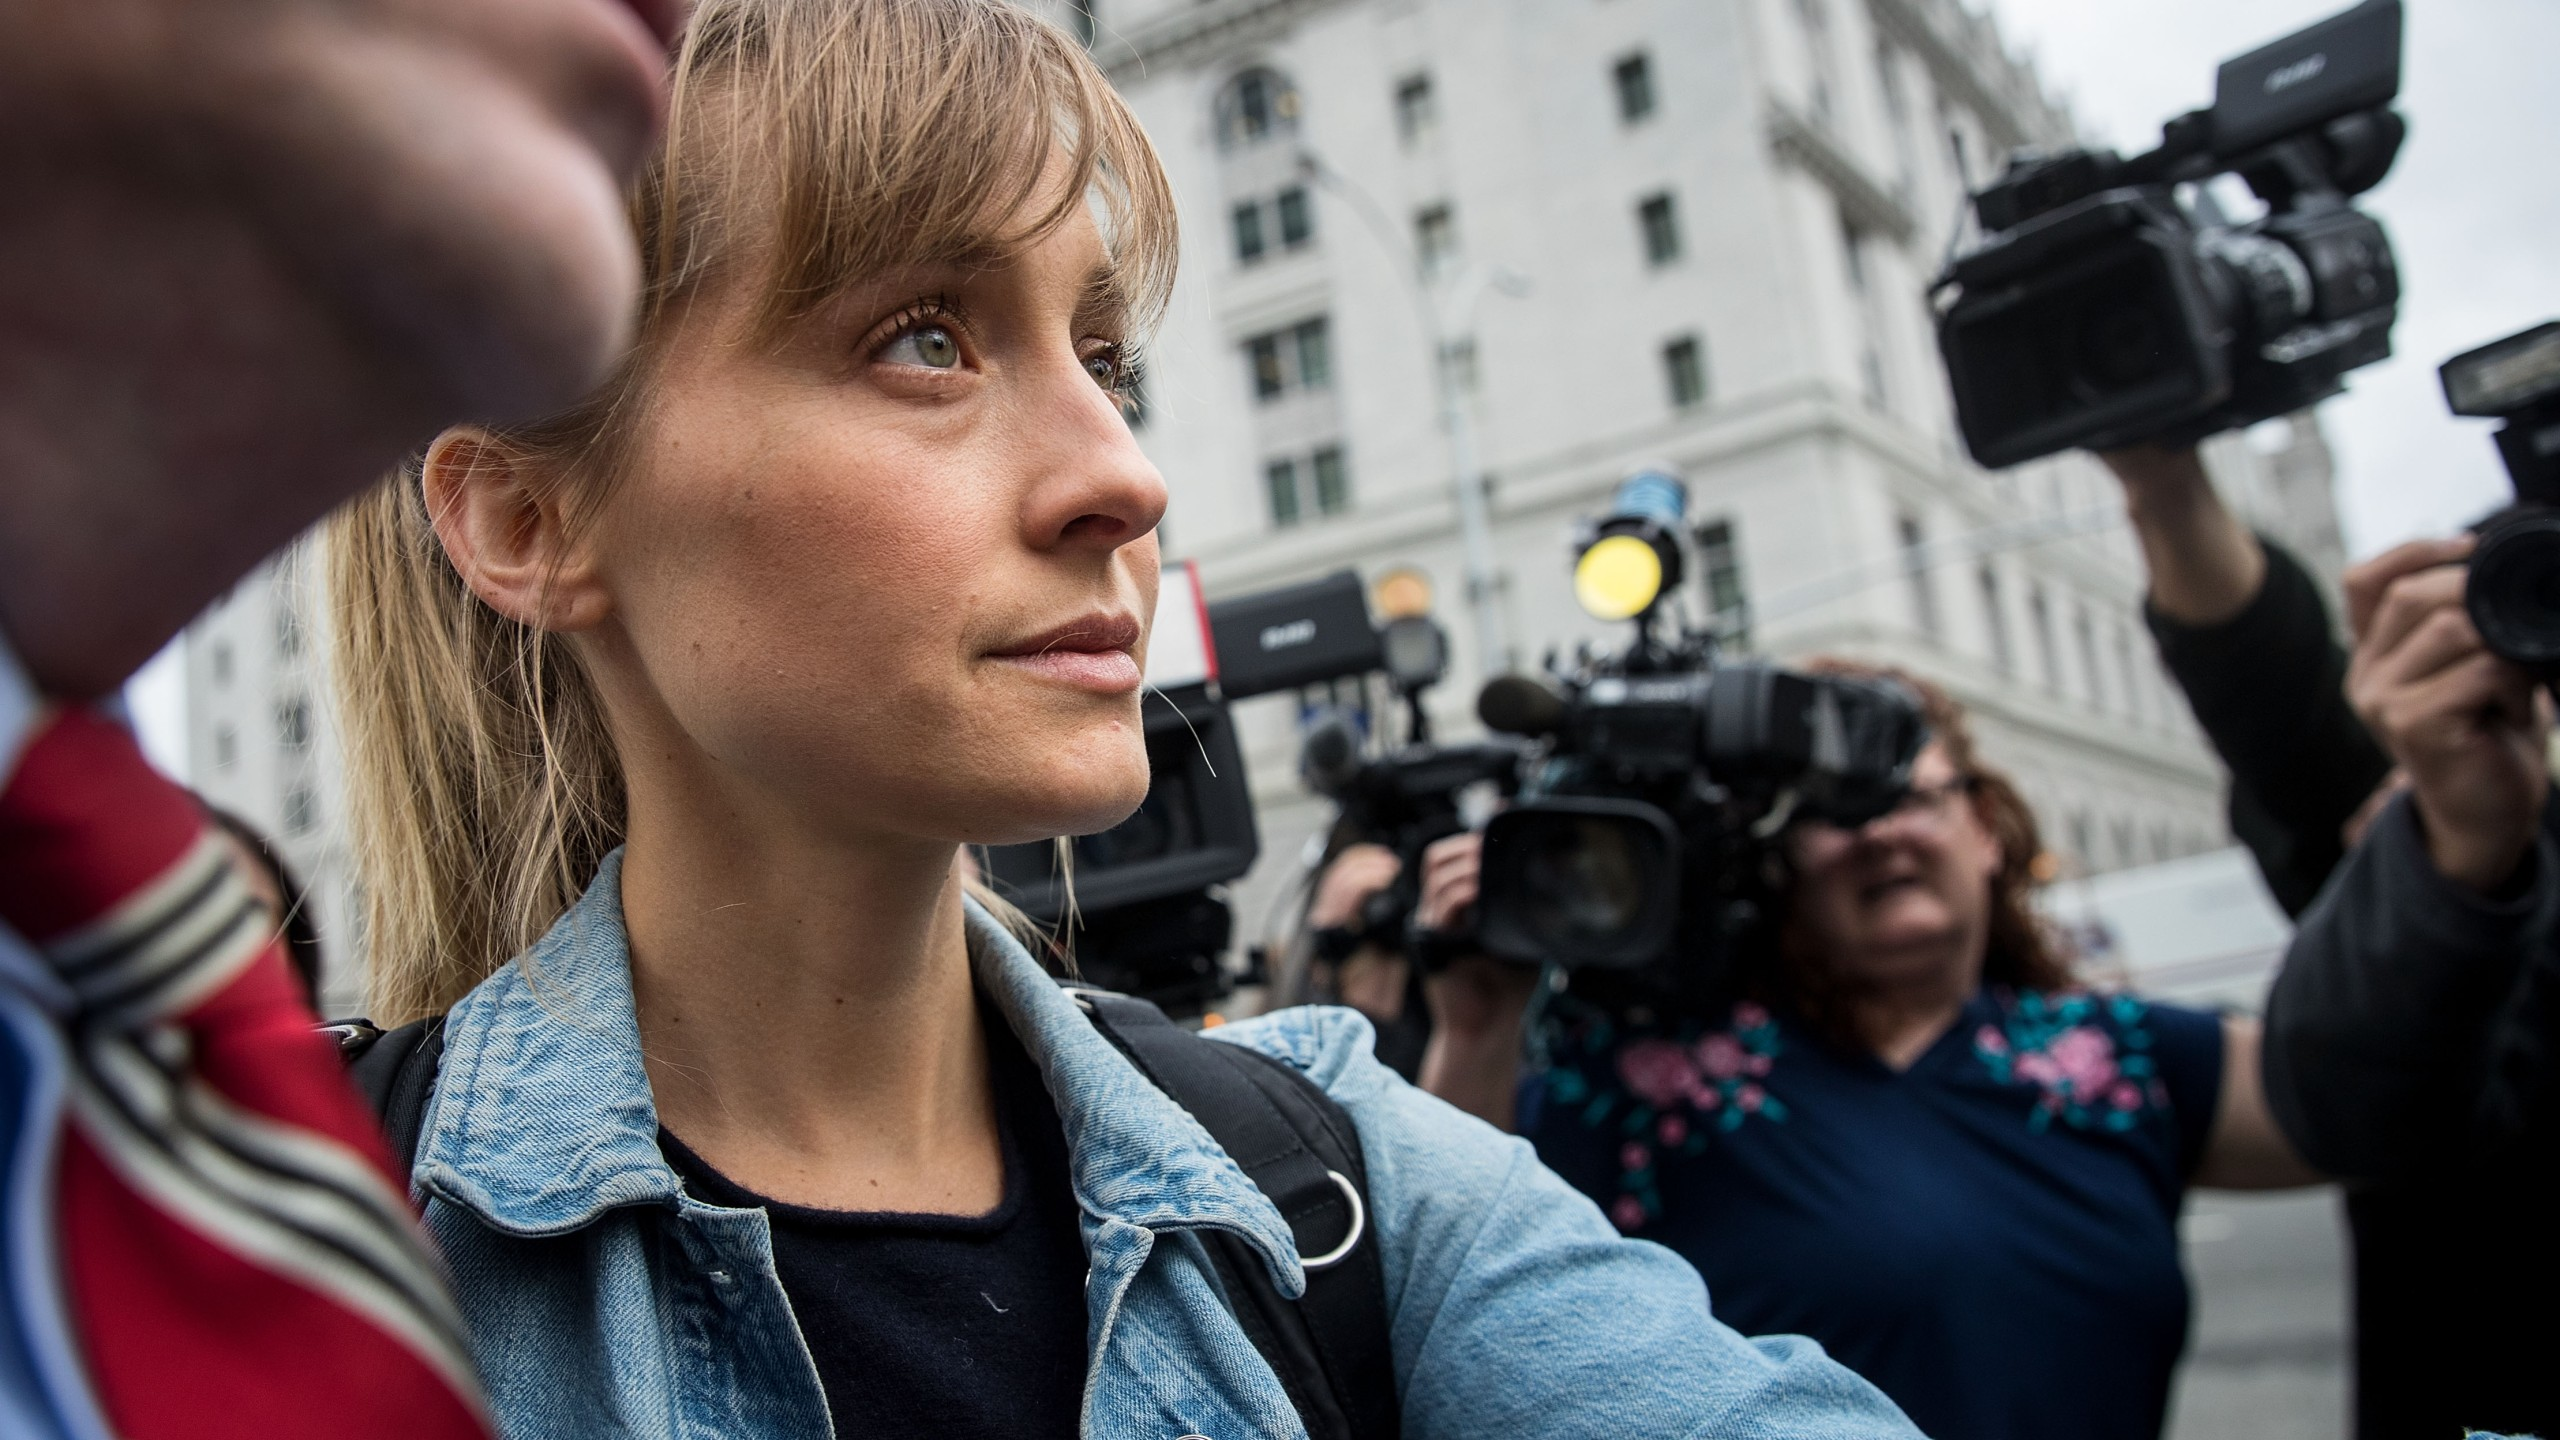 Actress Allison Mack leaves U.S. District Court for the Eastern District of New York after a bail hearing, April 24, 2018, in Brooklyn. (Credit: Drew Angerer / Getty Images)